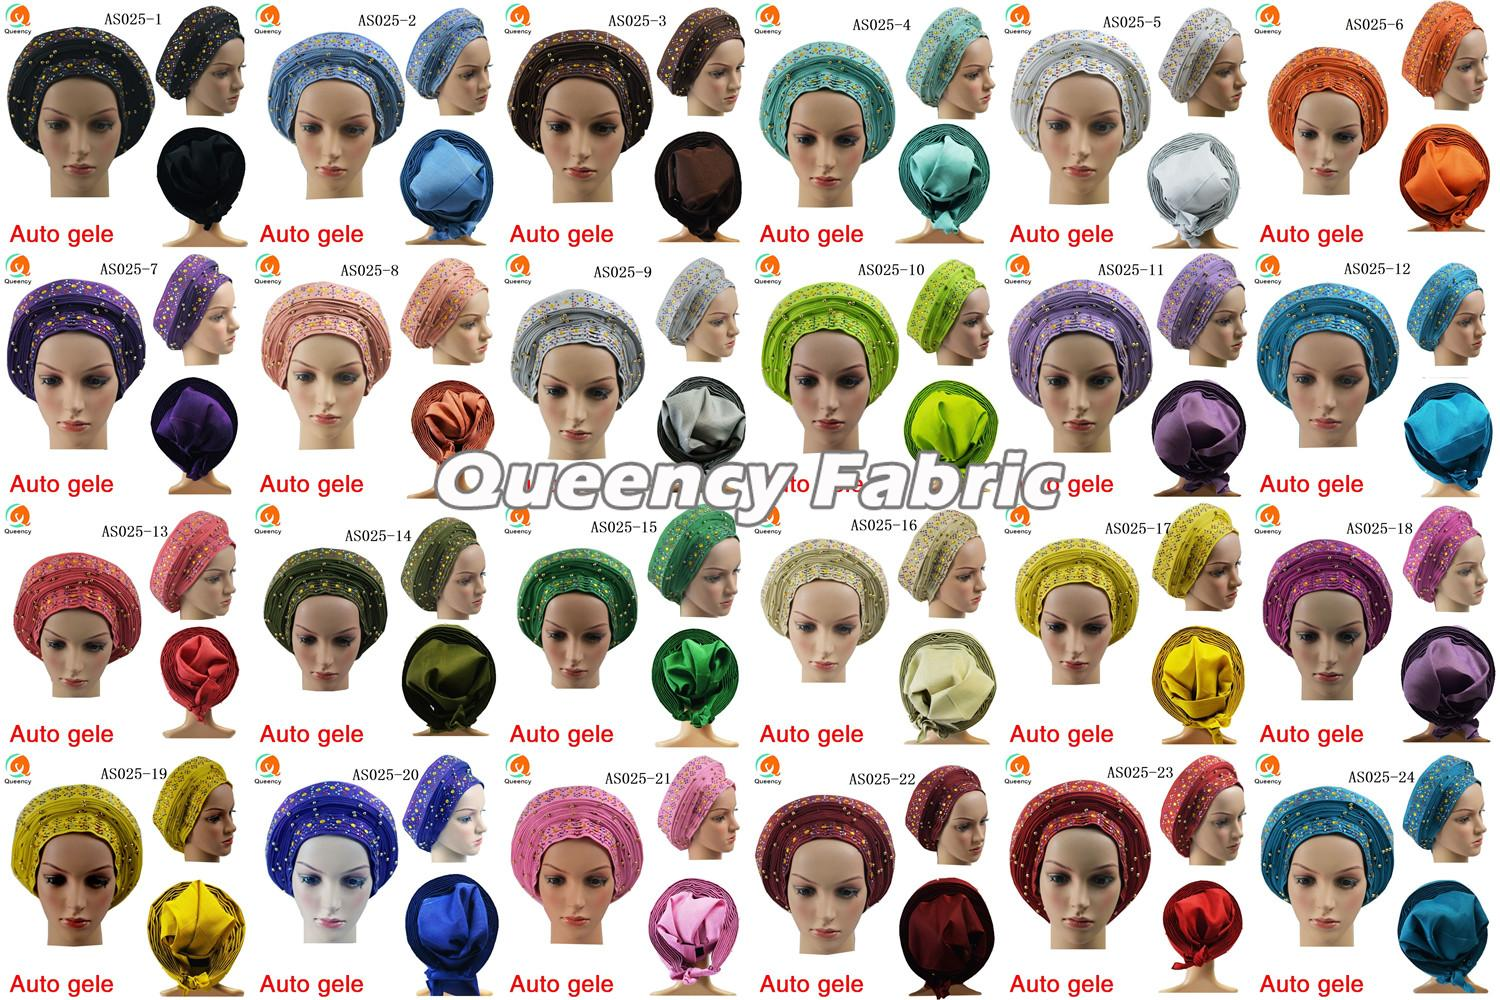 African Auto Gele Collection